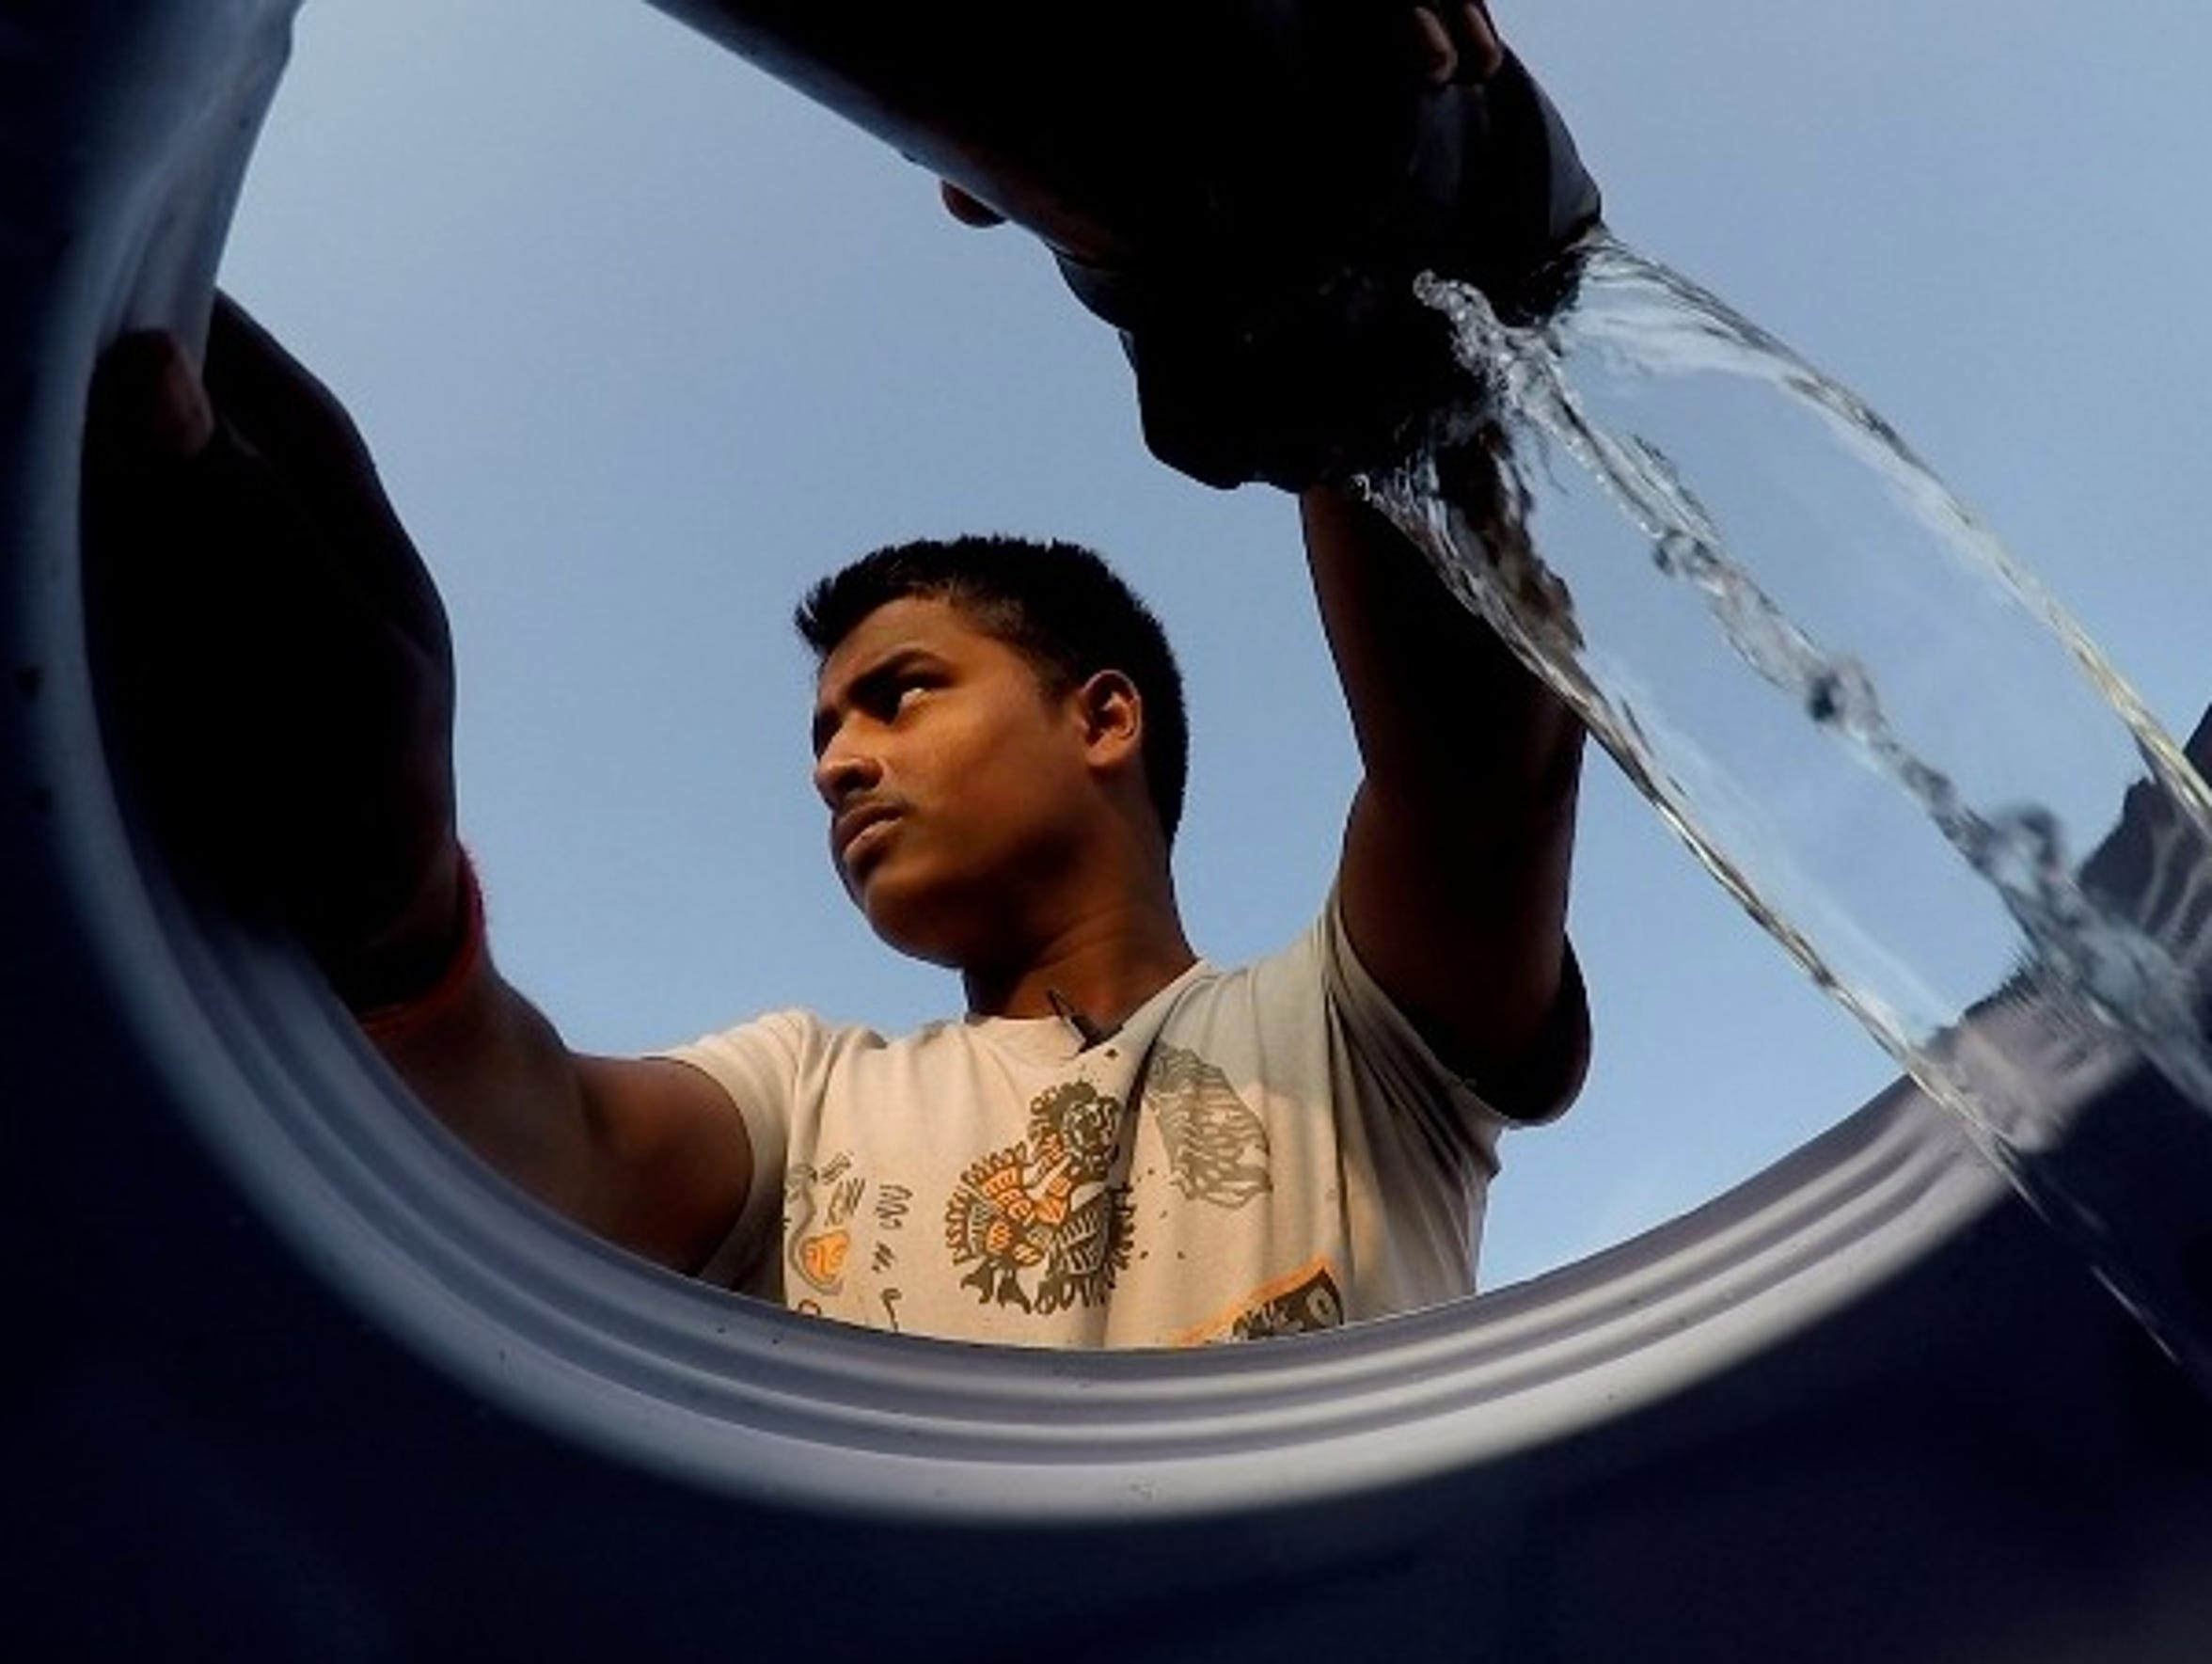 Mukindra Suryawanshi, 22, fills his family's water